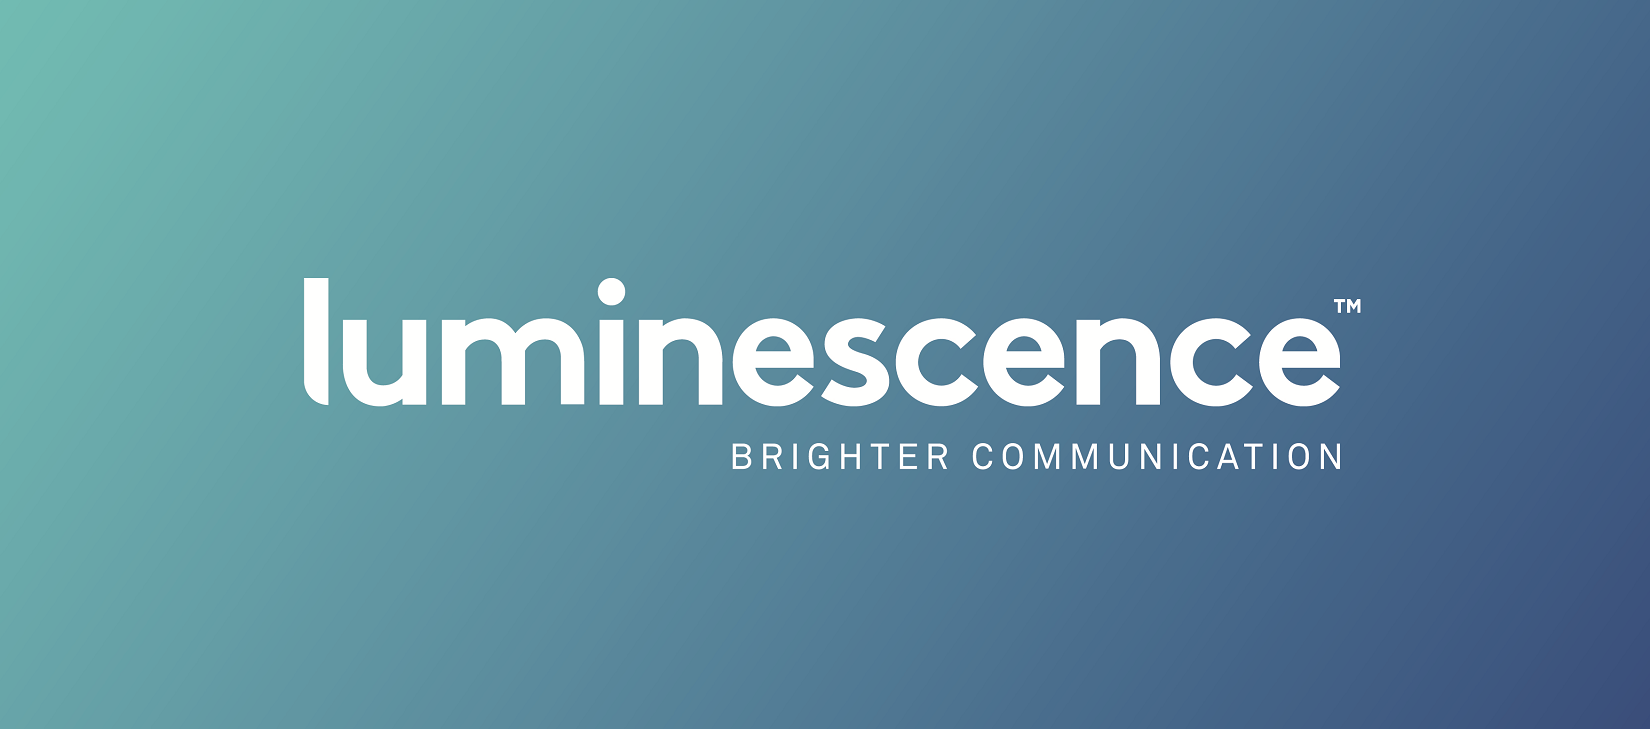 The Story Behind Luminescence